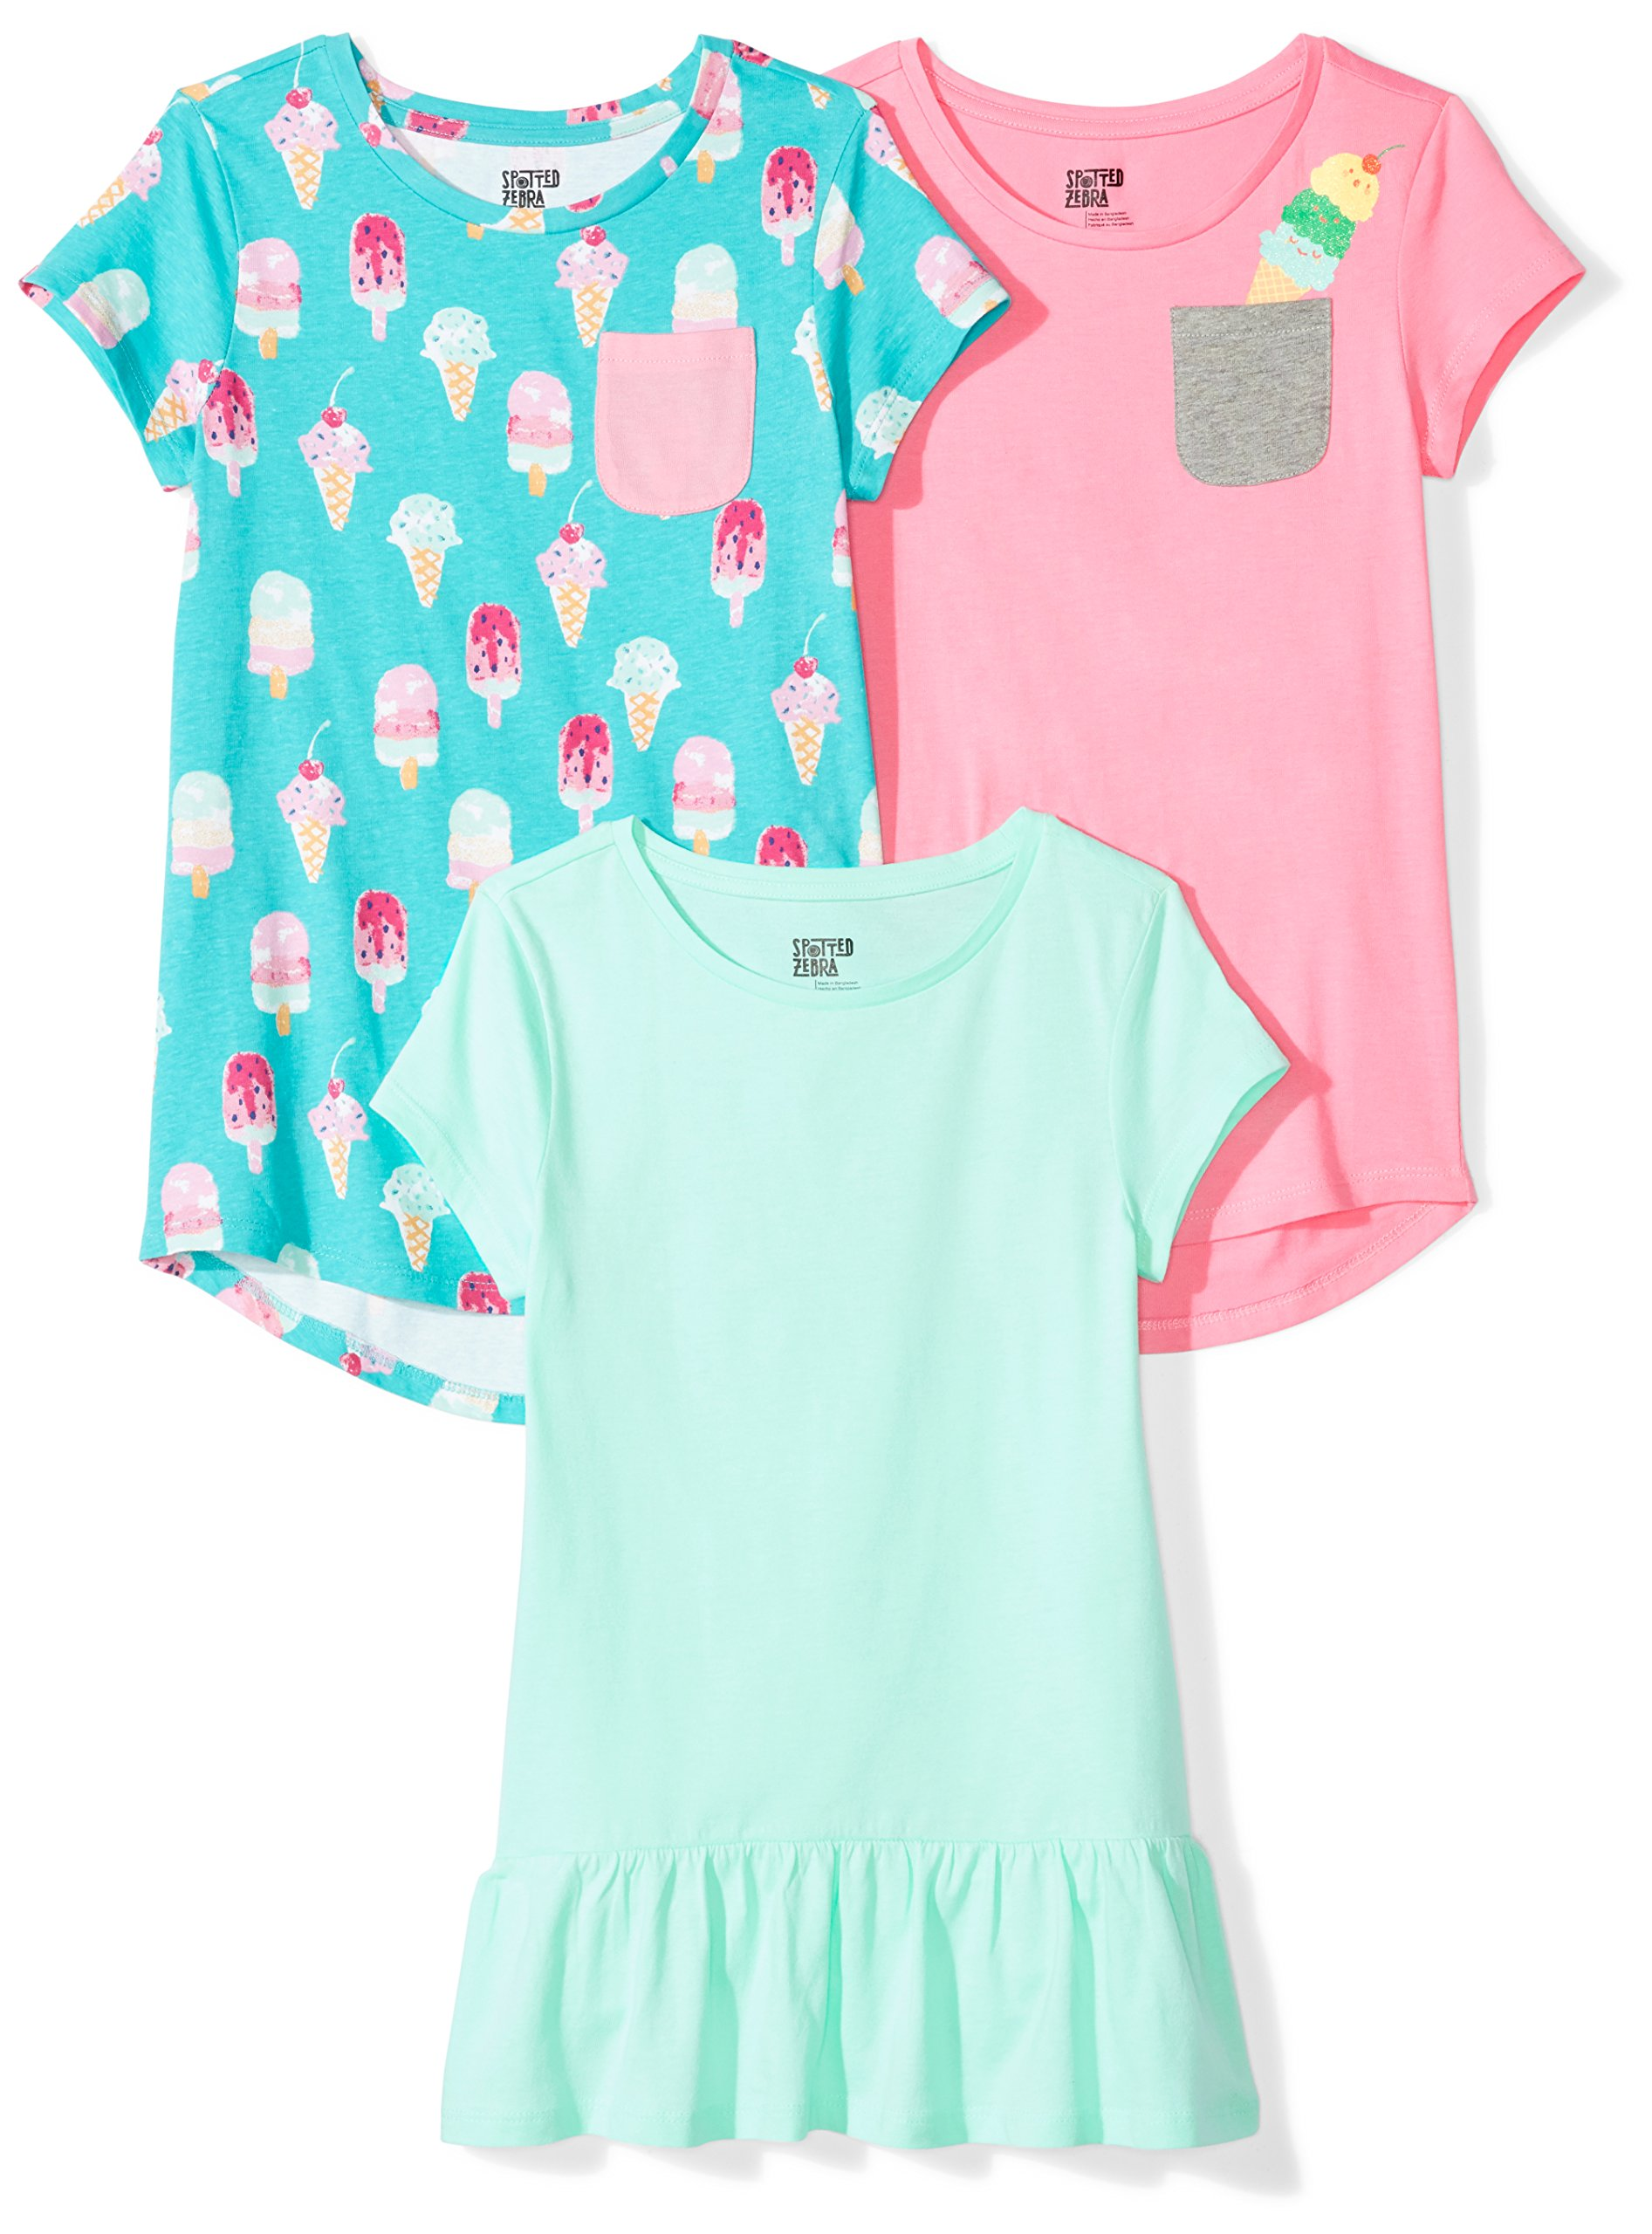 Spotted Zebra Little Girls' 3-Pack Short-Sleeve Tunic Tops, Sweets, Small (6-7)